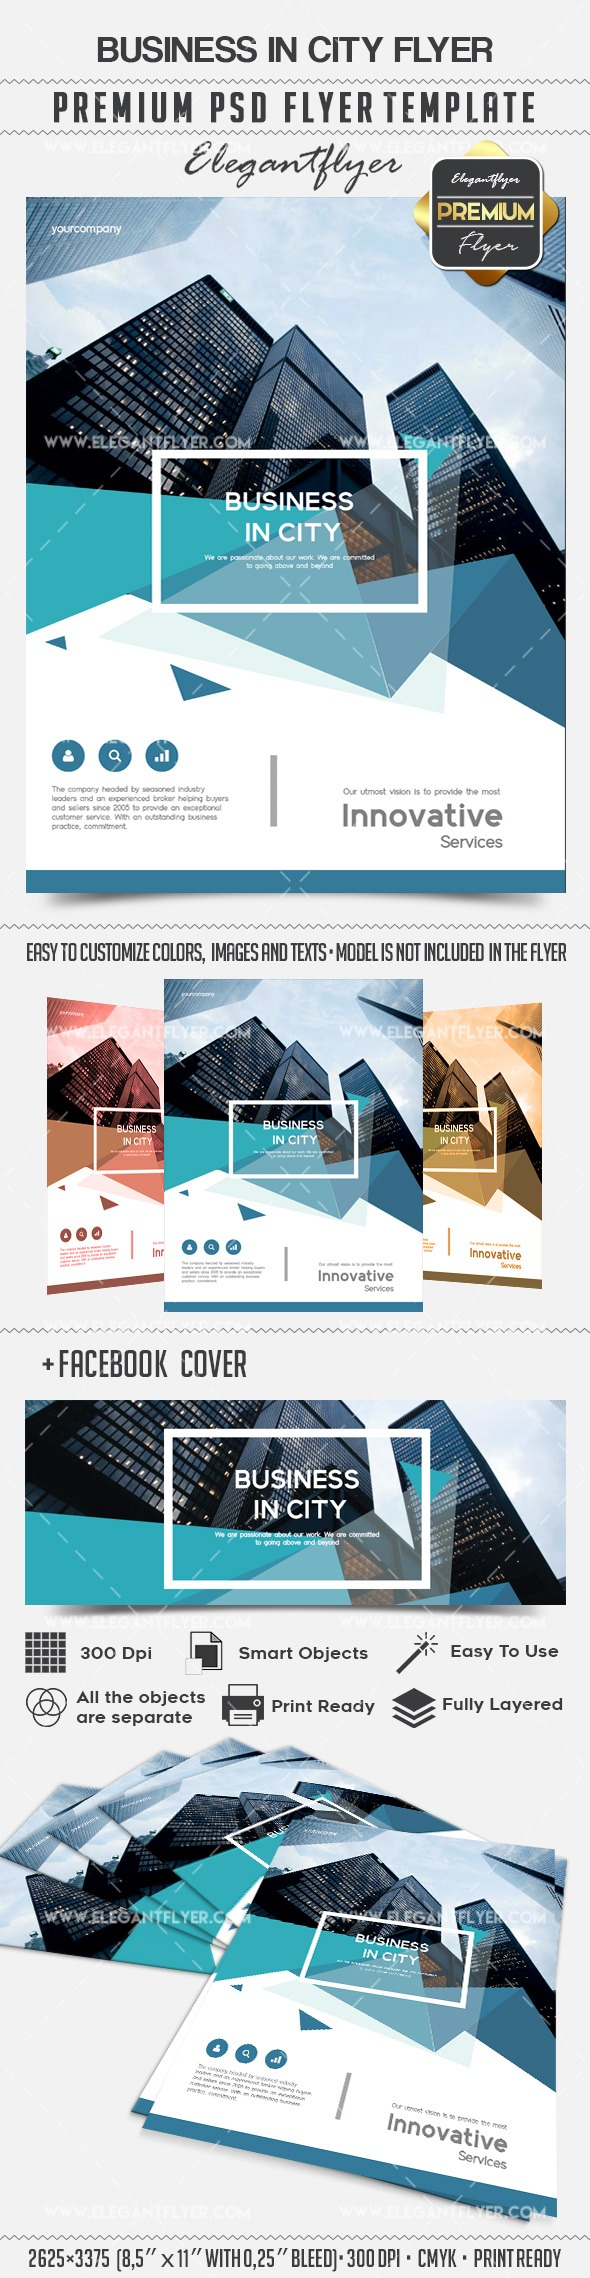 Business in city – Flyer PSD Template